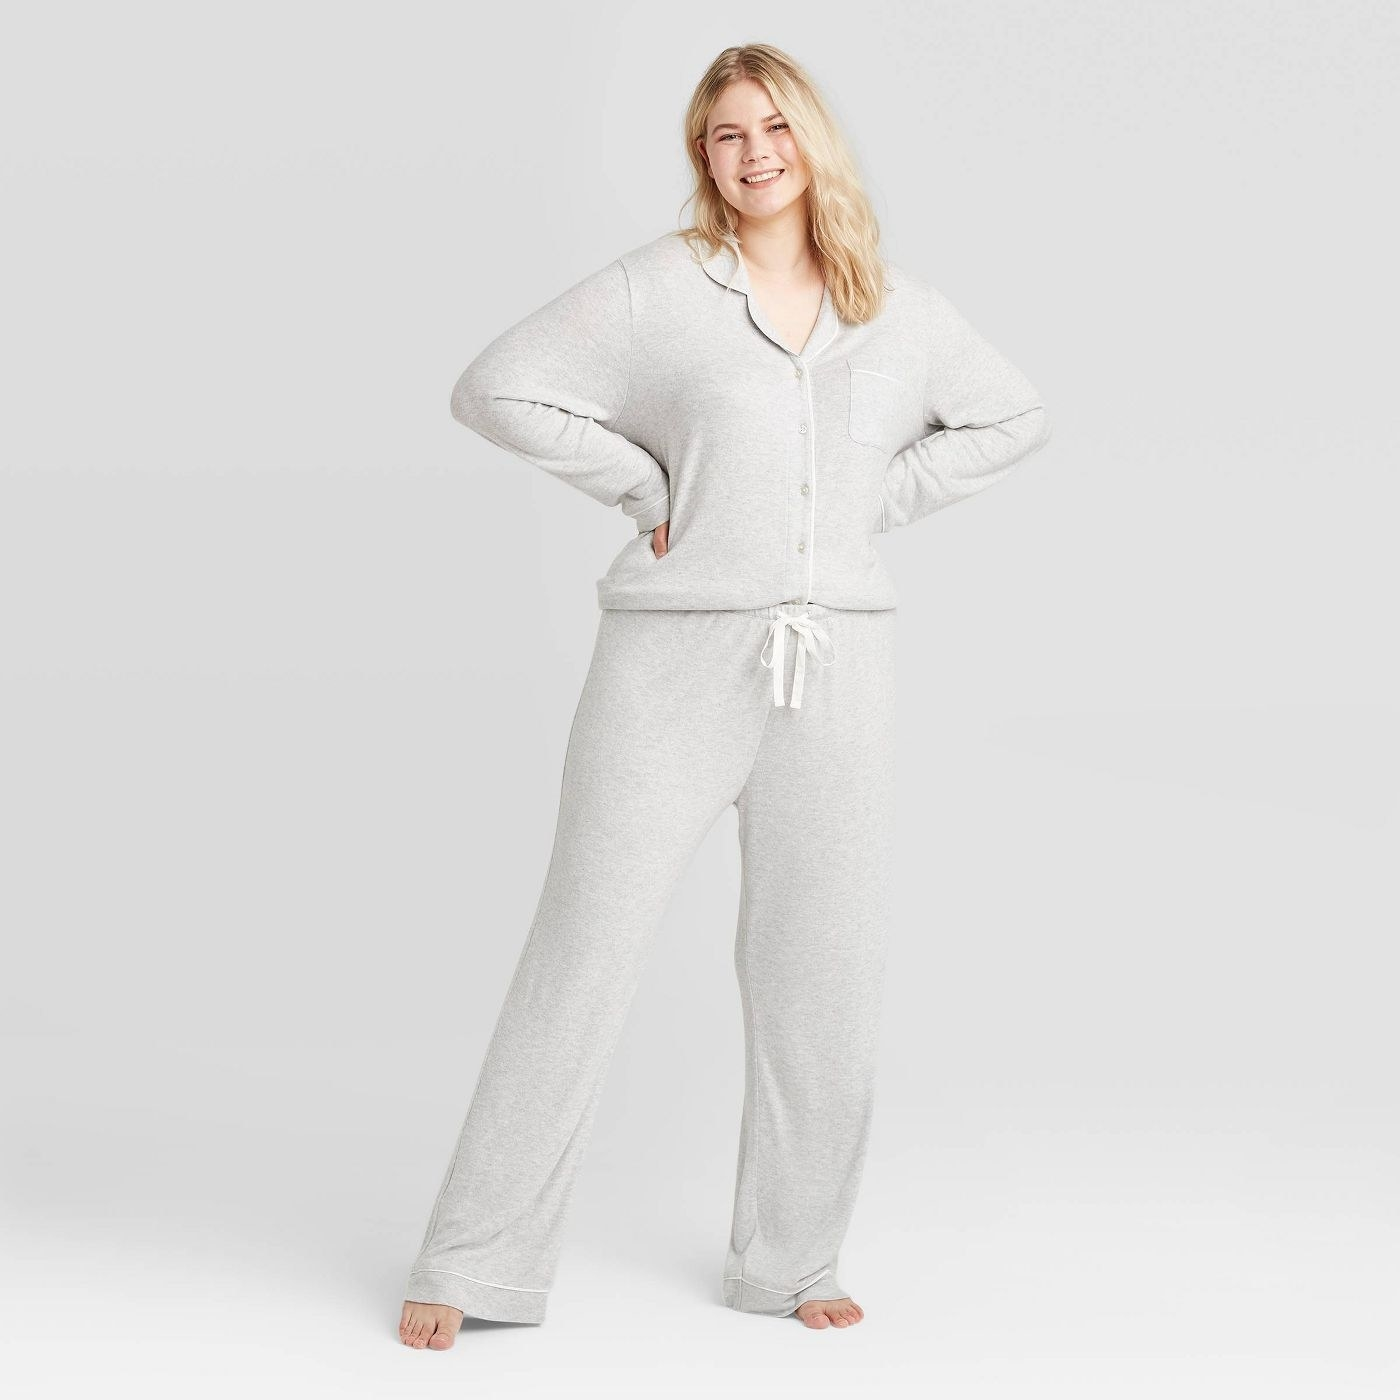 Model in gray long sleeve pajama set